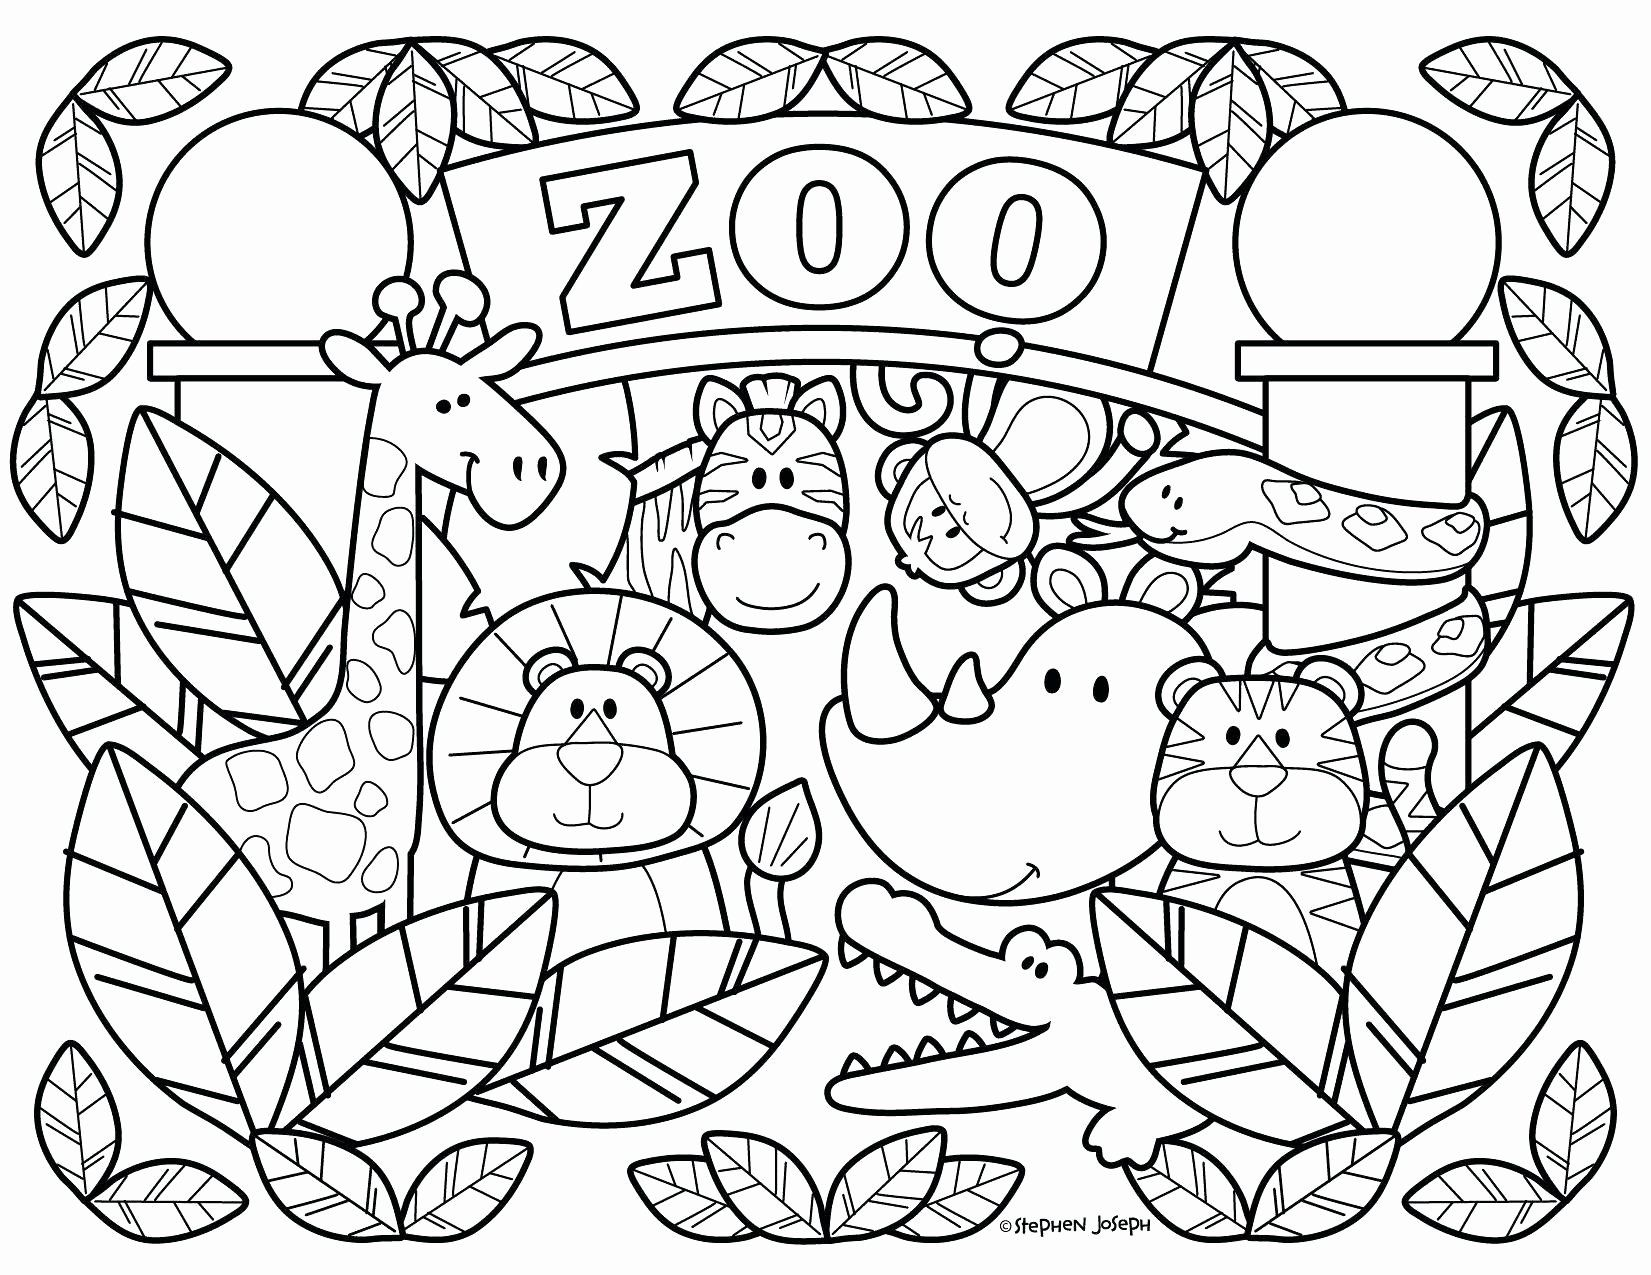 Coloring Pages Zoo Animals Preschool Inspirational Z Is For Zoo Coloring Page Allurep Zoo Animal Coloring Pages Zoo Coloring Pages Farm Animal Coloring Pages